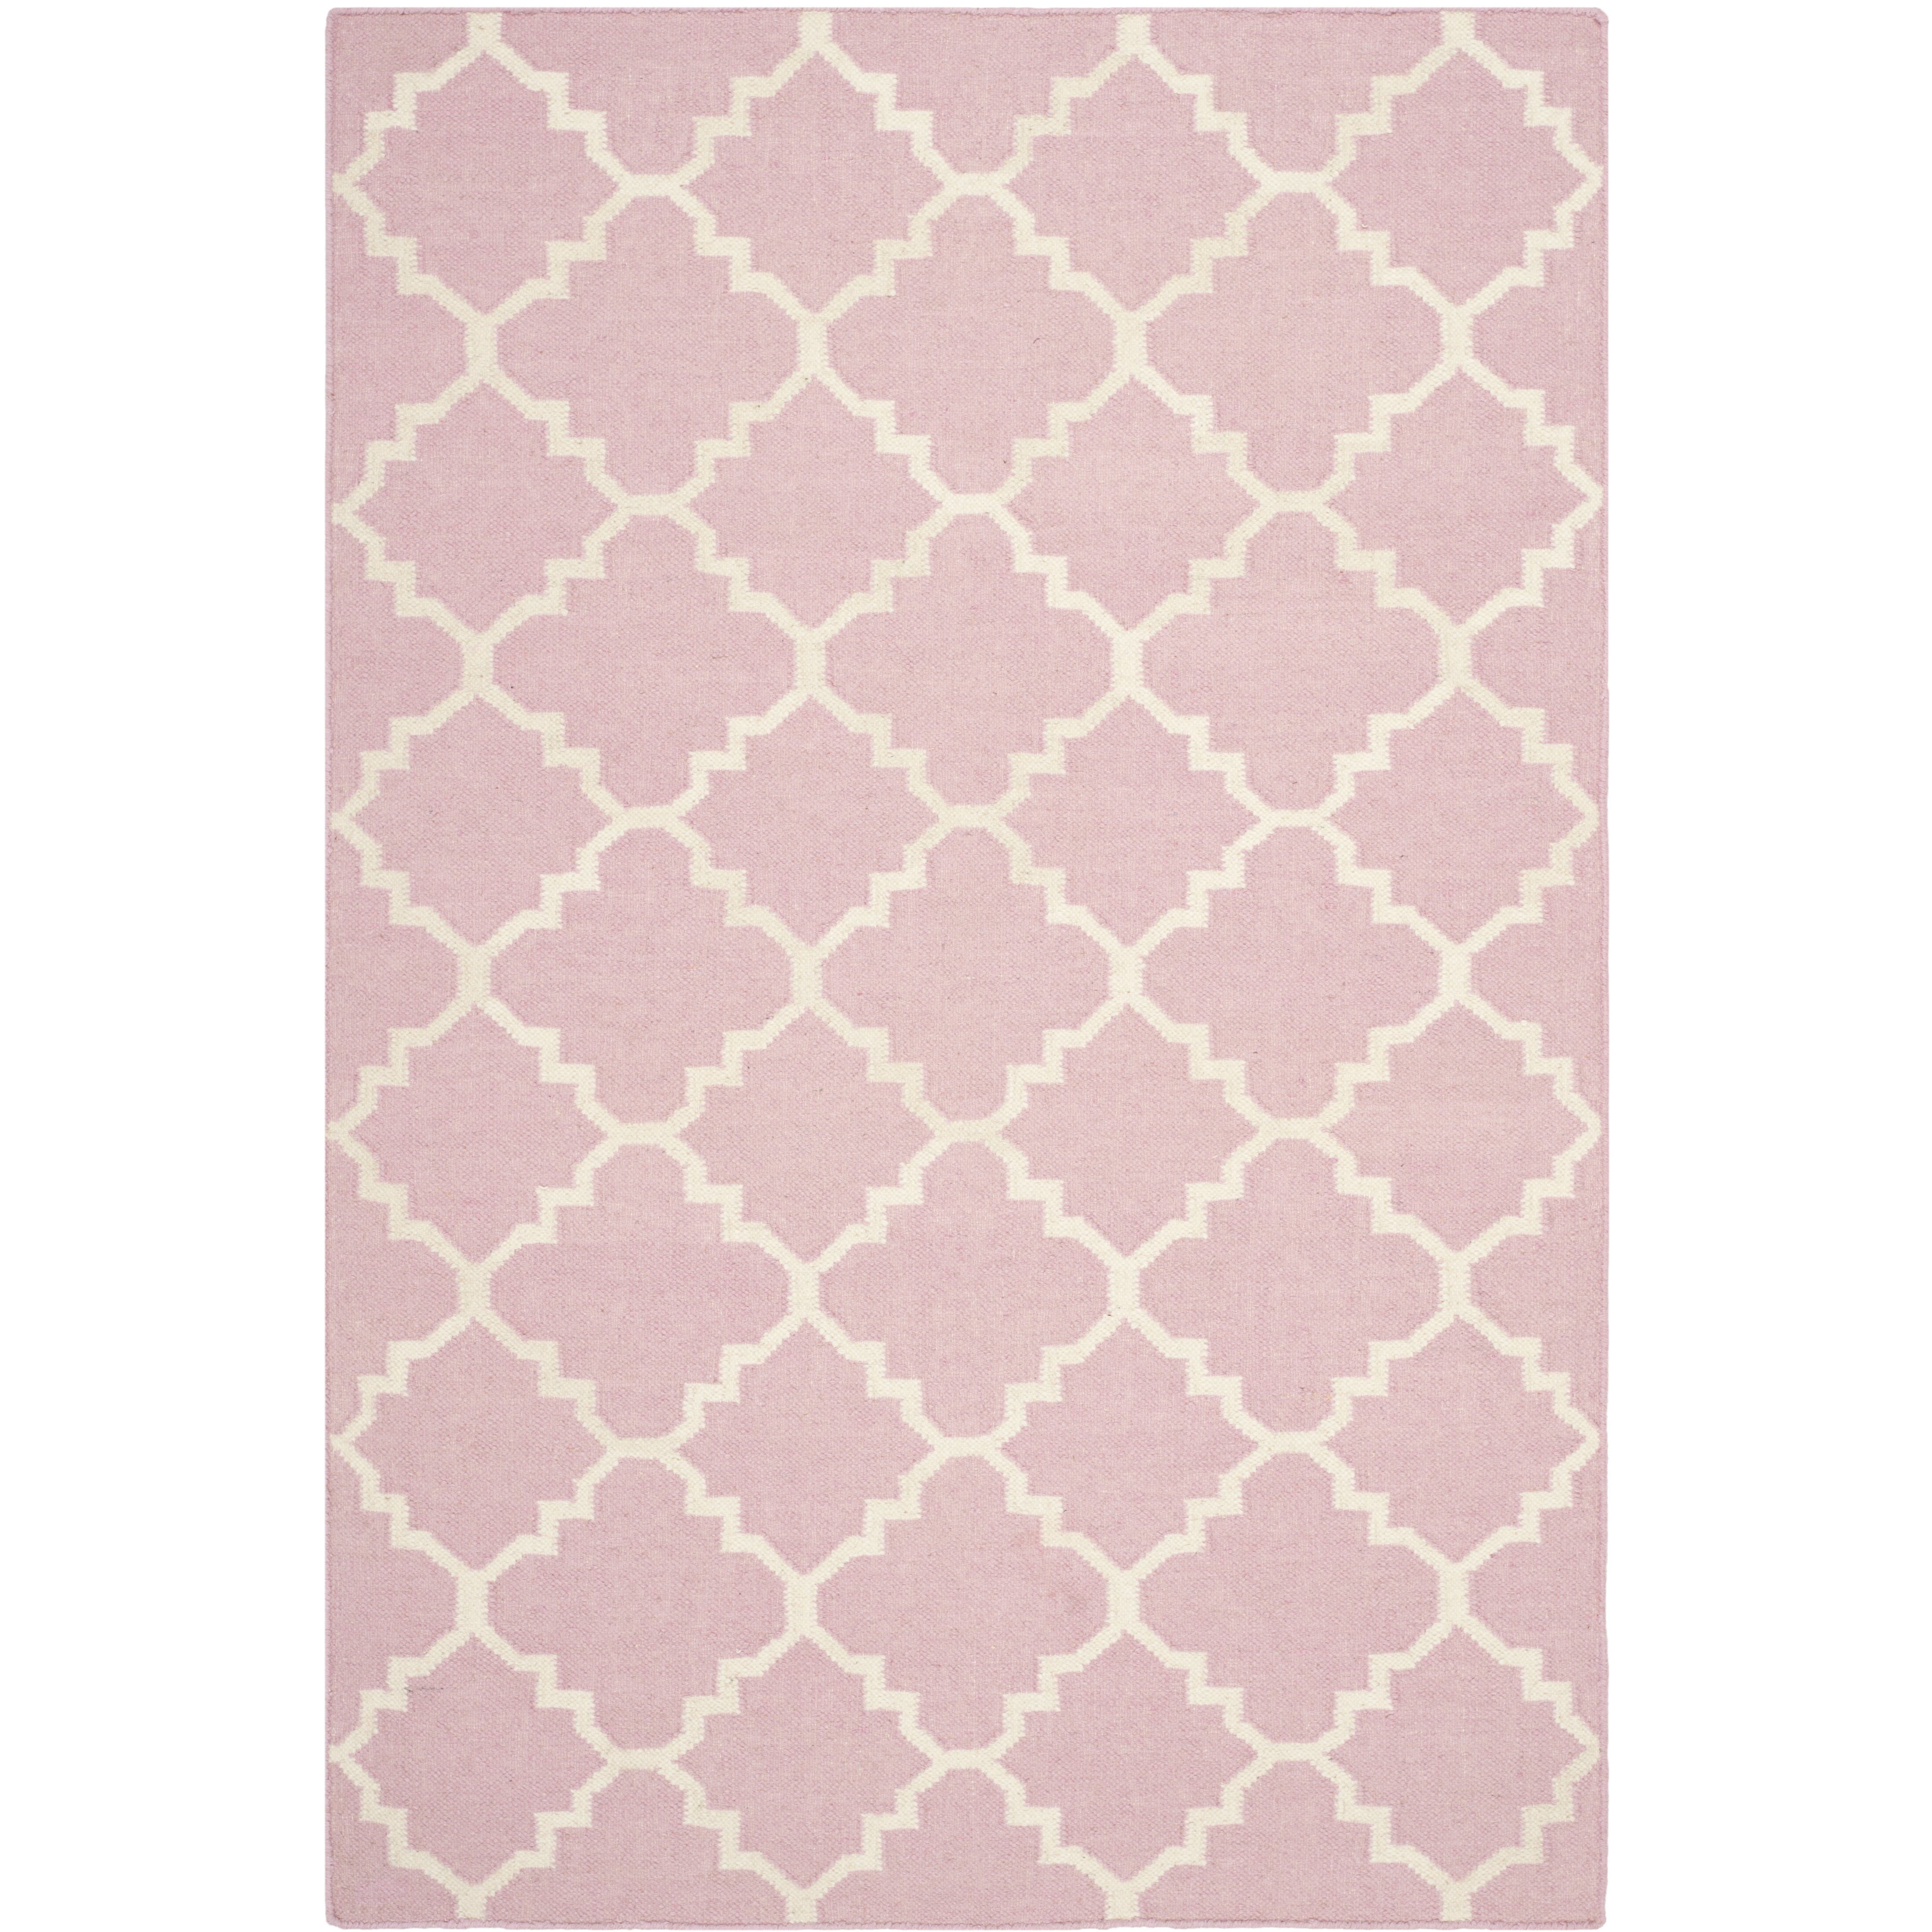 safavieh dhurries pinkivory area rug cheerful home office rug wayfair safavieh